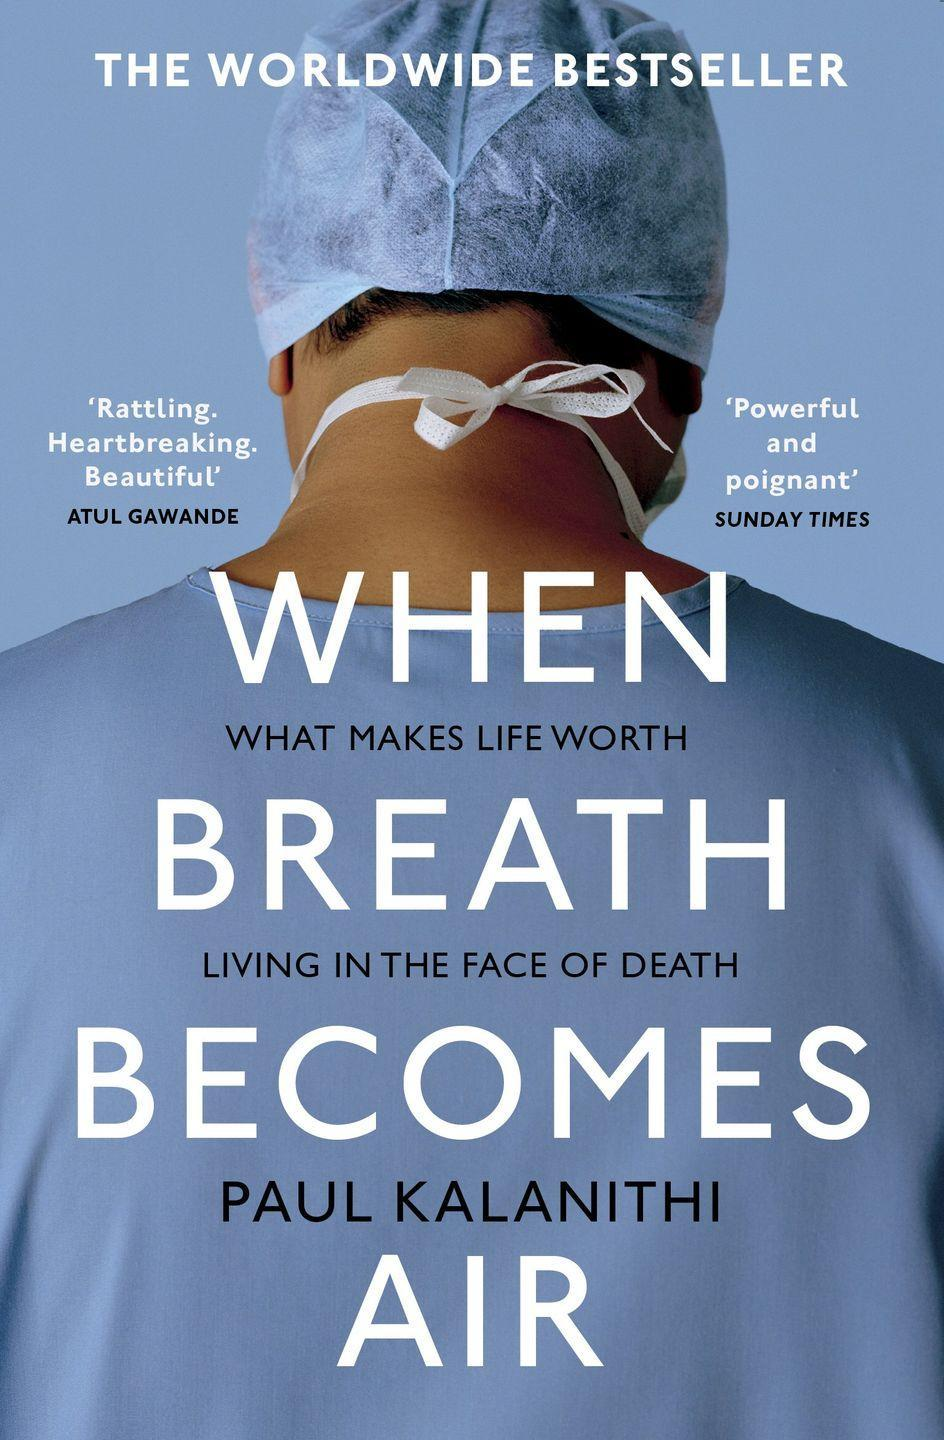 "<p>On the verge of completing his training as a neurosurgeon, at 36 years old, Kalanithi was diagnosed with inoperable lung cancer. One day he was a doctor treating the dying, the next he was a patient struggling to live.</p><p>Kalanithi died while working on this book, yet his words live on as a guide to us all. When Breath Becomes Air is a life-affirming reflection on facing our mortality and on the relationship between doctor and patient.<br></p><p><a class=""link rapid-noclick-resp"" href=""https://www.amazon.co.uk/When-Breath-Becomes-Paul-Kalanithi/dp/1784701998?tag=hearstuk-yahoo-21&ascsubtag=%5Bartid%7C1921.g.32141605%5Bsrc%7Cyahoo-uk"" rel=""nofollow noopener"" target=""_blank"" data-ylk=""slk:SHOP NOW"">SHOP NOW</a></p>"